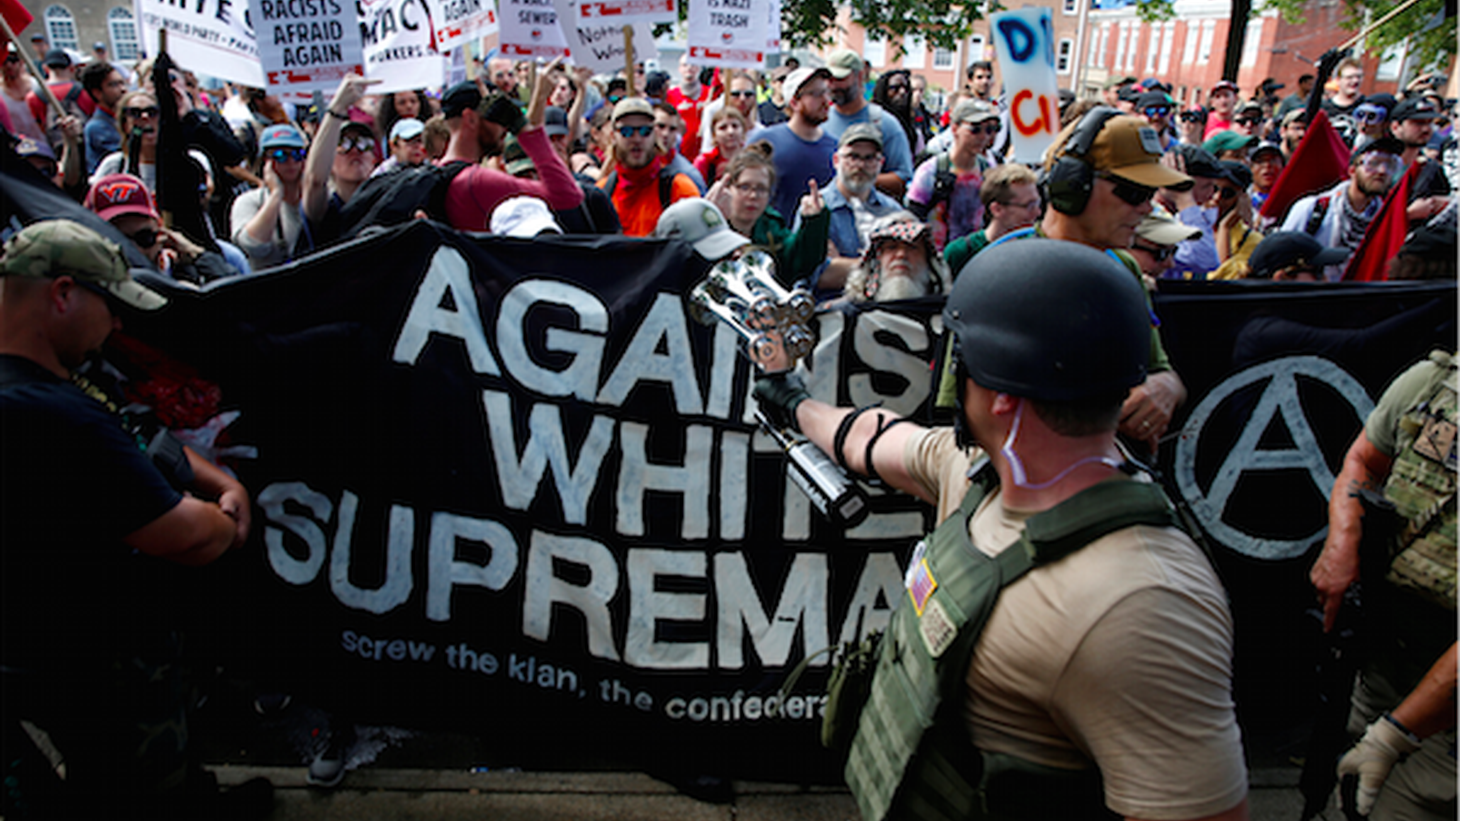 It took President Trump two days to directly condemn white supremacists after they rampaged through Charlottesville, Virginia, inciting violence. One woman was killed and two state troopers died in a related accident.